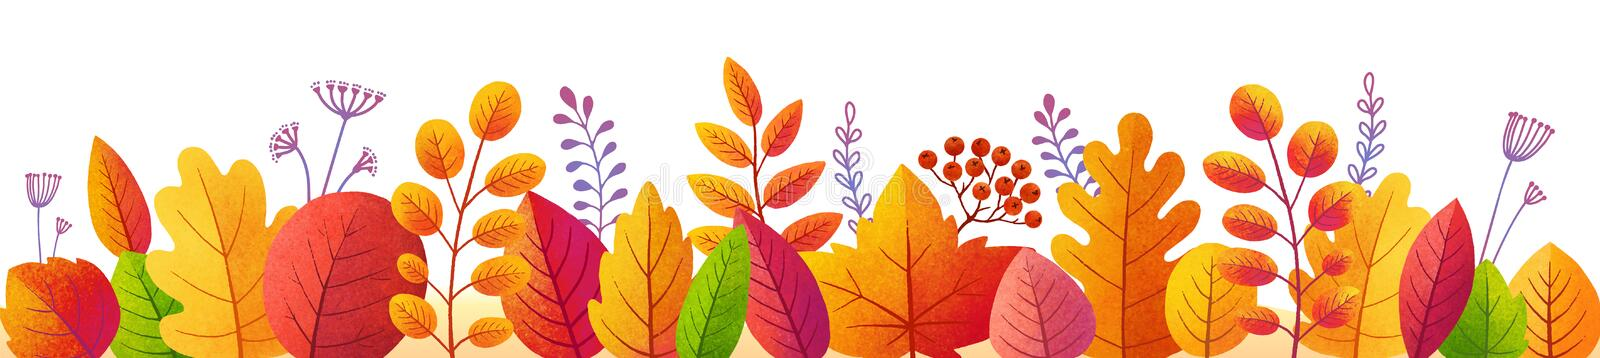 Bright autumn leaves in textured flat style, vector colorful fall foliage border. Isolated on white background royalty free illustration